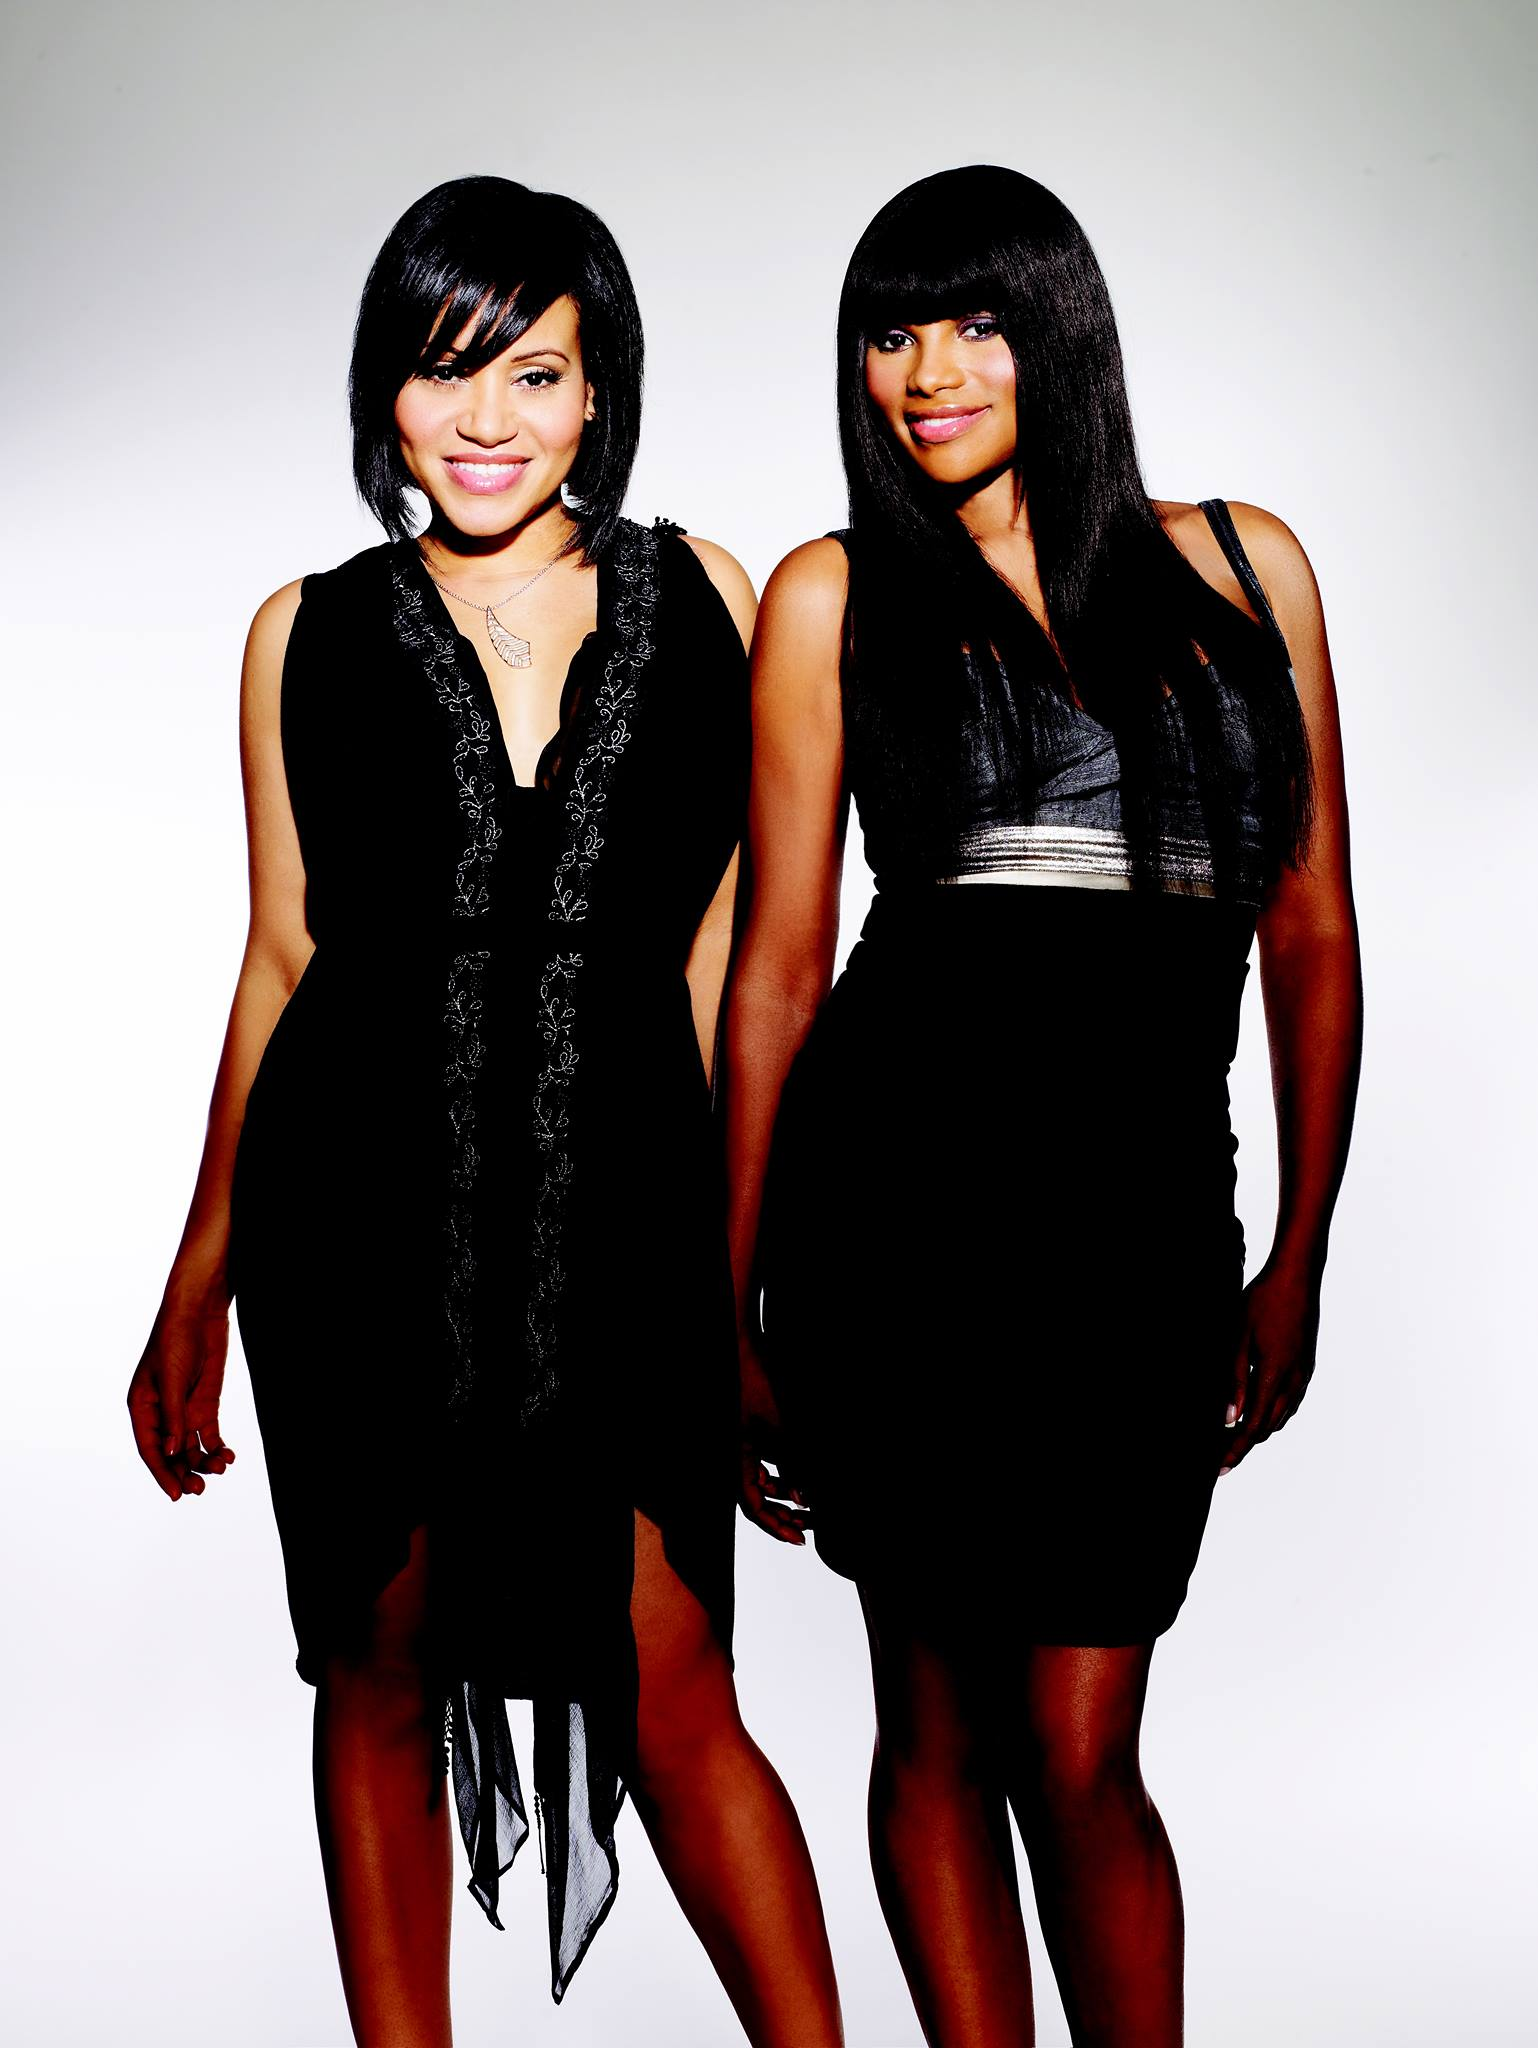 "Salt-N-Pepa Cheryl ""Salt"" James and Sandra ""Pepa"" Denton will executive produce the miniseries Salt-N-Pepa that will premiere on Lifetime. Photo by Courtesy of Lifetime Copyright 2021"